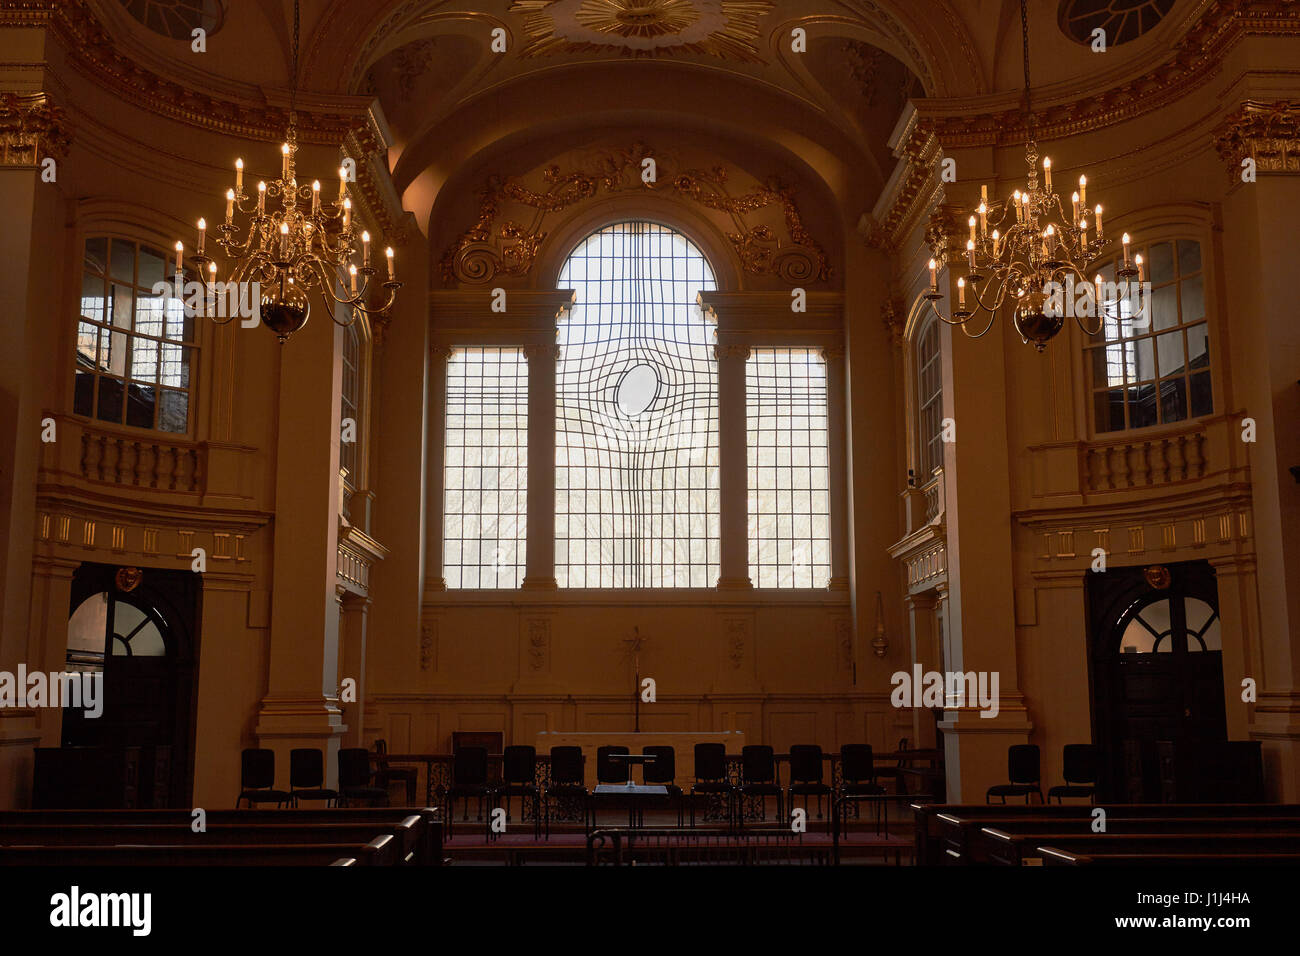 Warped East window by Iranian artist Shirazeh Houshiary, St Martin in the Fields (designed by James Gibbs 1722-26), - Stock Image